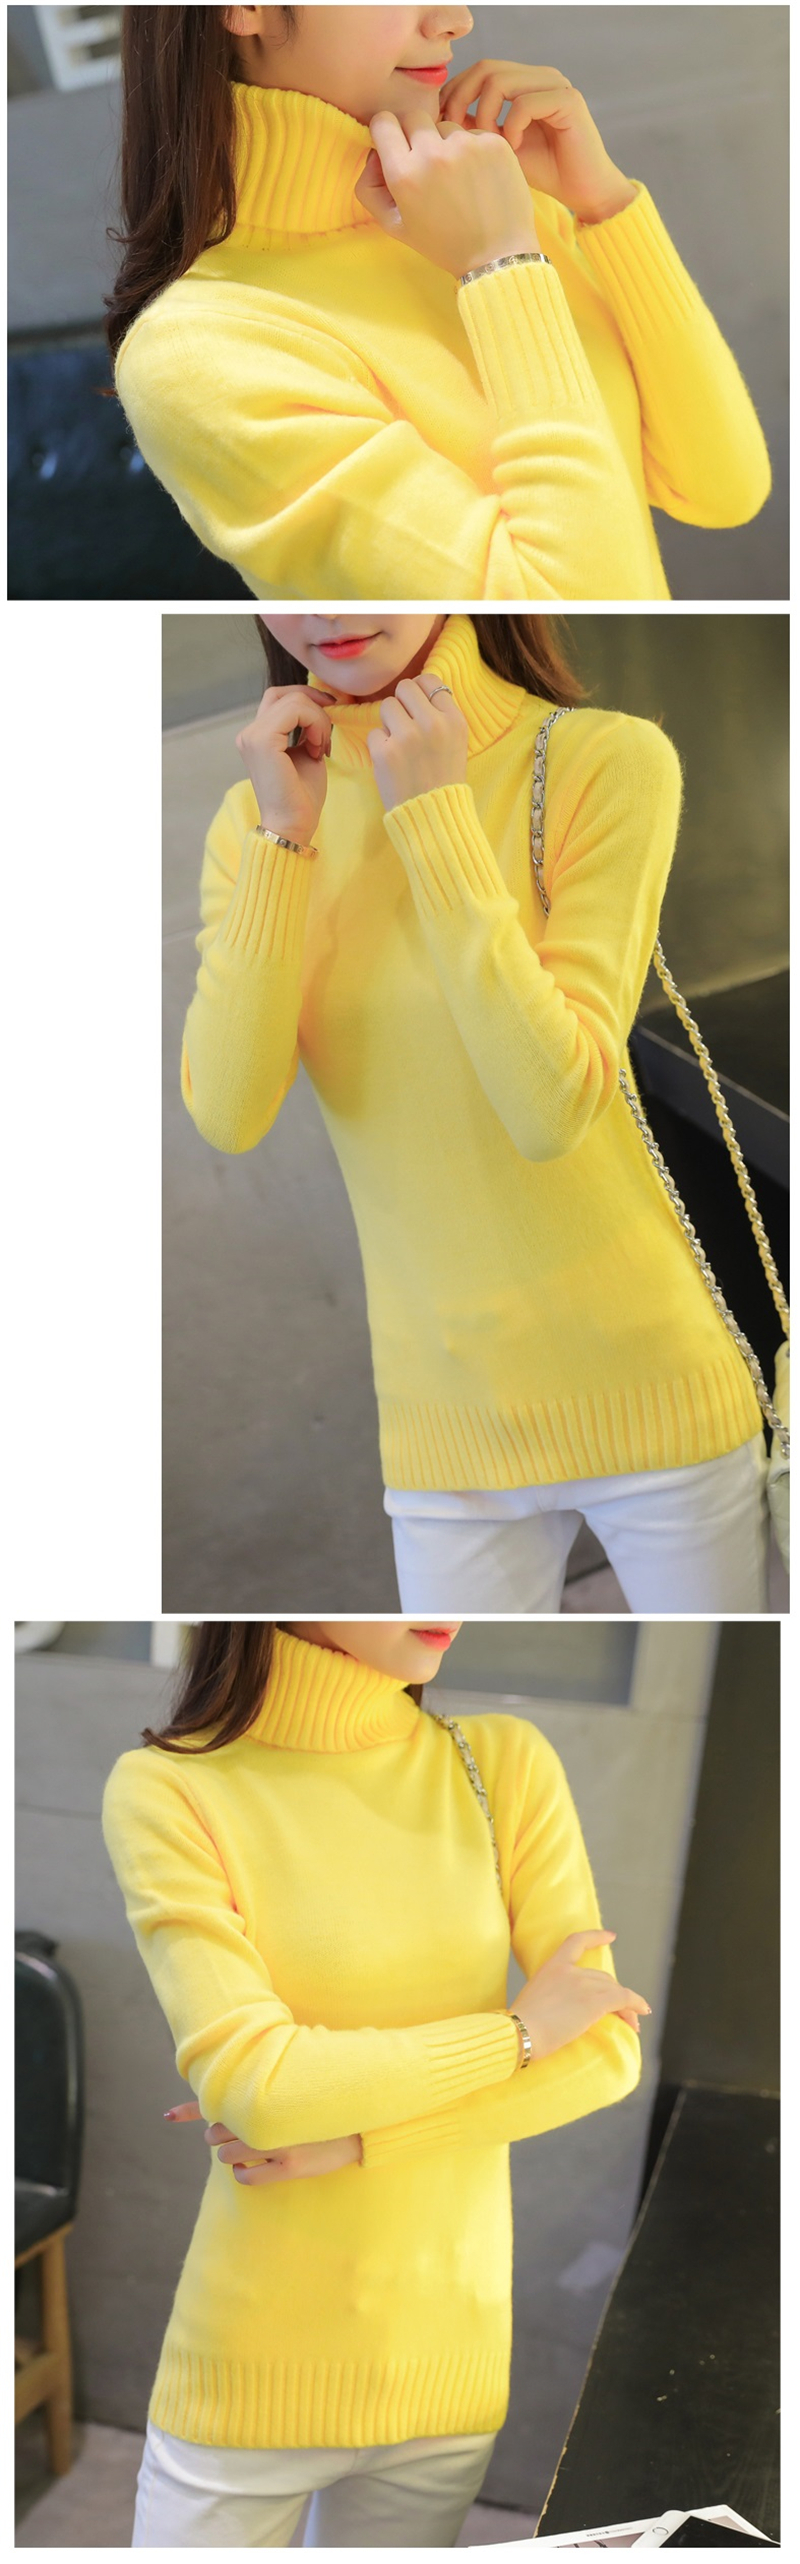 18 New Autumn winter Women Knitted Sweaters Pullovers Turtleneck Long Sleeve Solid Color Slim Elastic Short Sweater Women K861 10